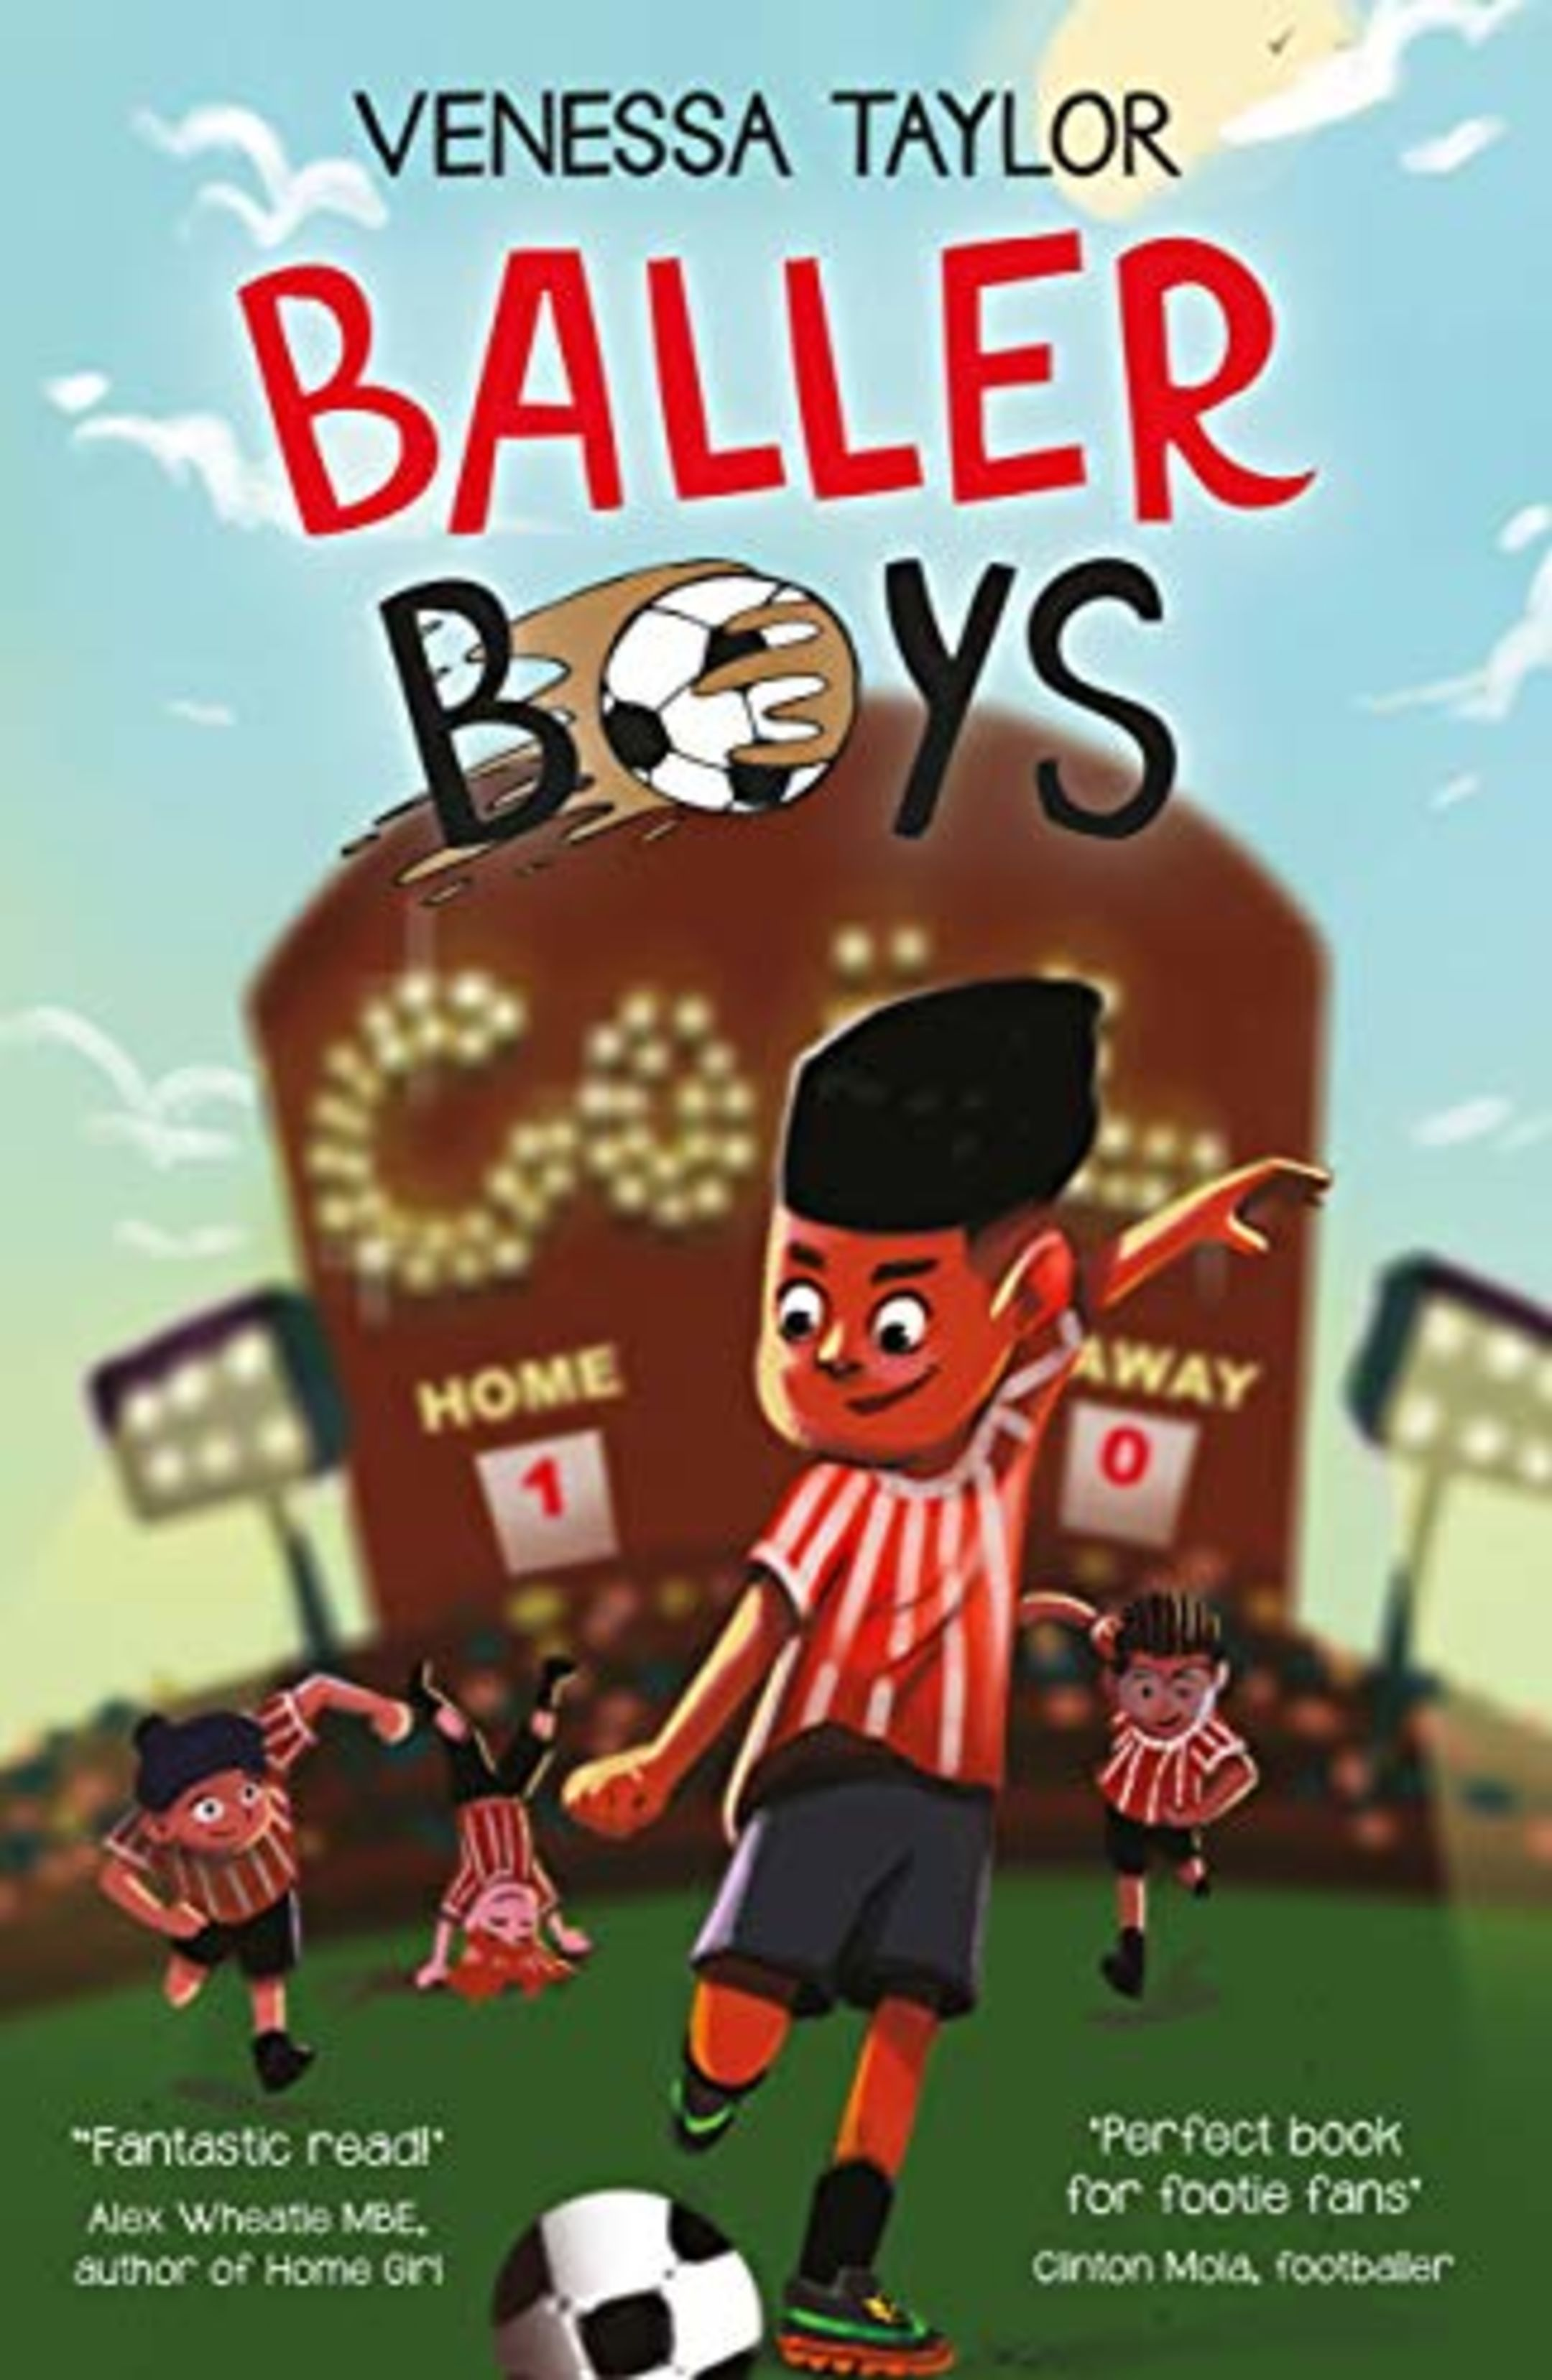 The book cover of Baller Boys, by Venessa Taylor